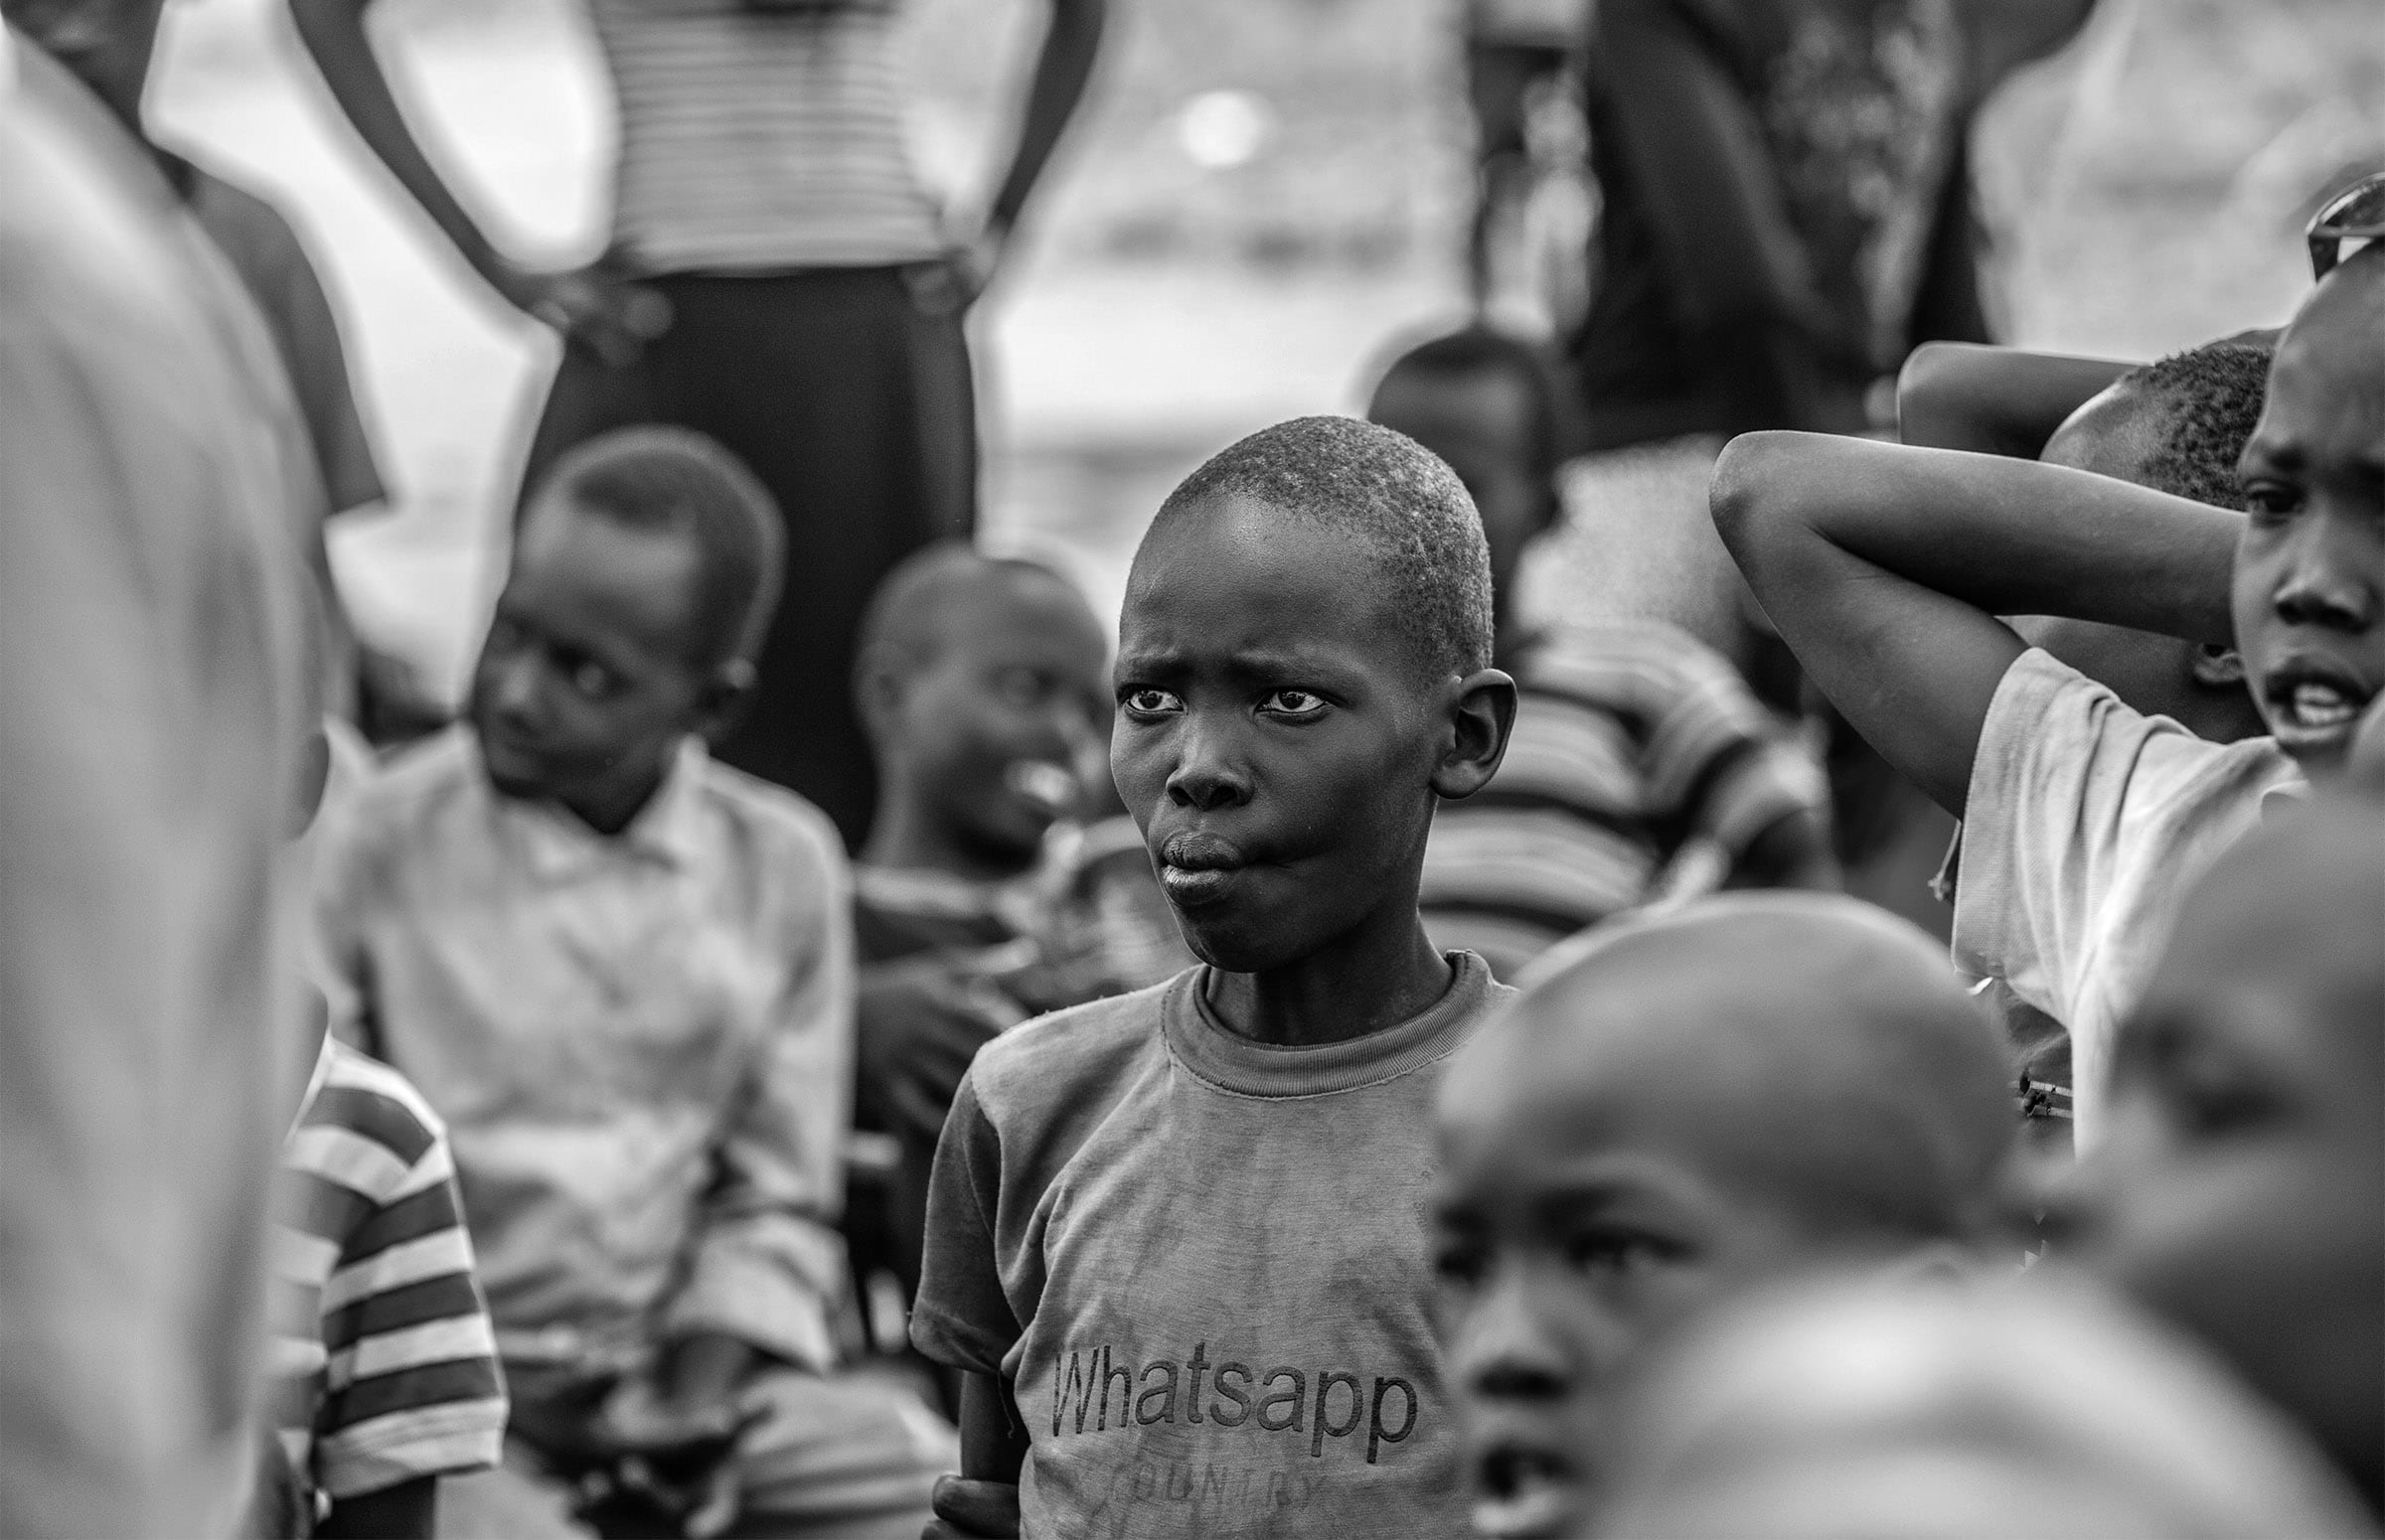 a boy stands in a crowd of children, staring and listening to someone speak